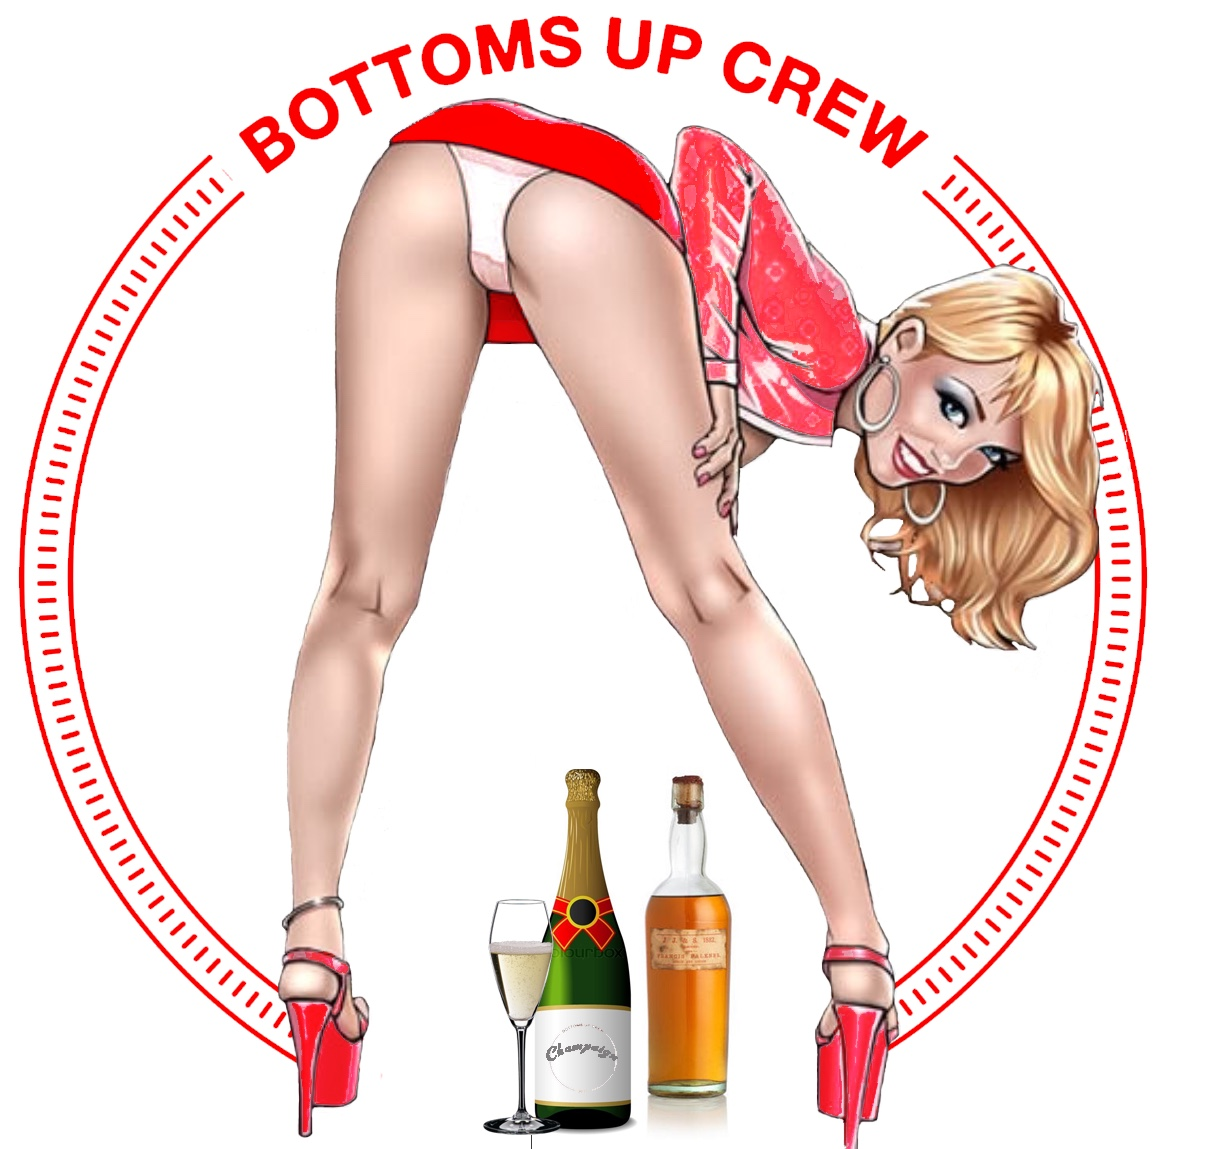 Bottoms Up Crew